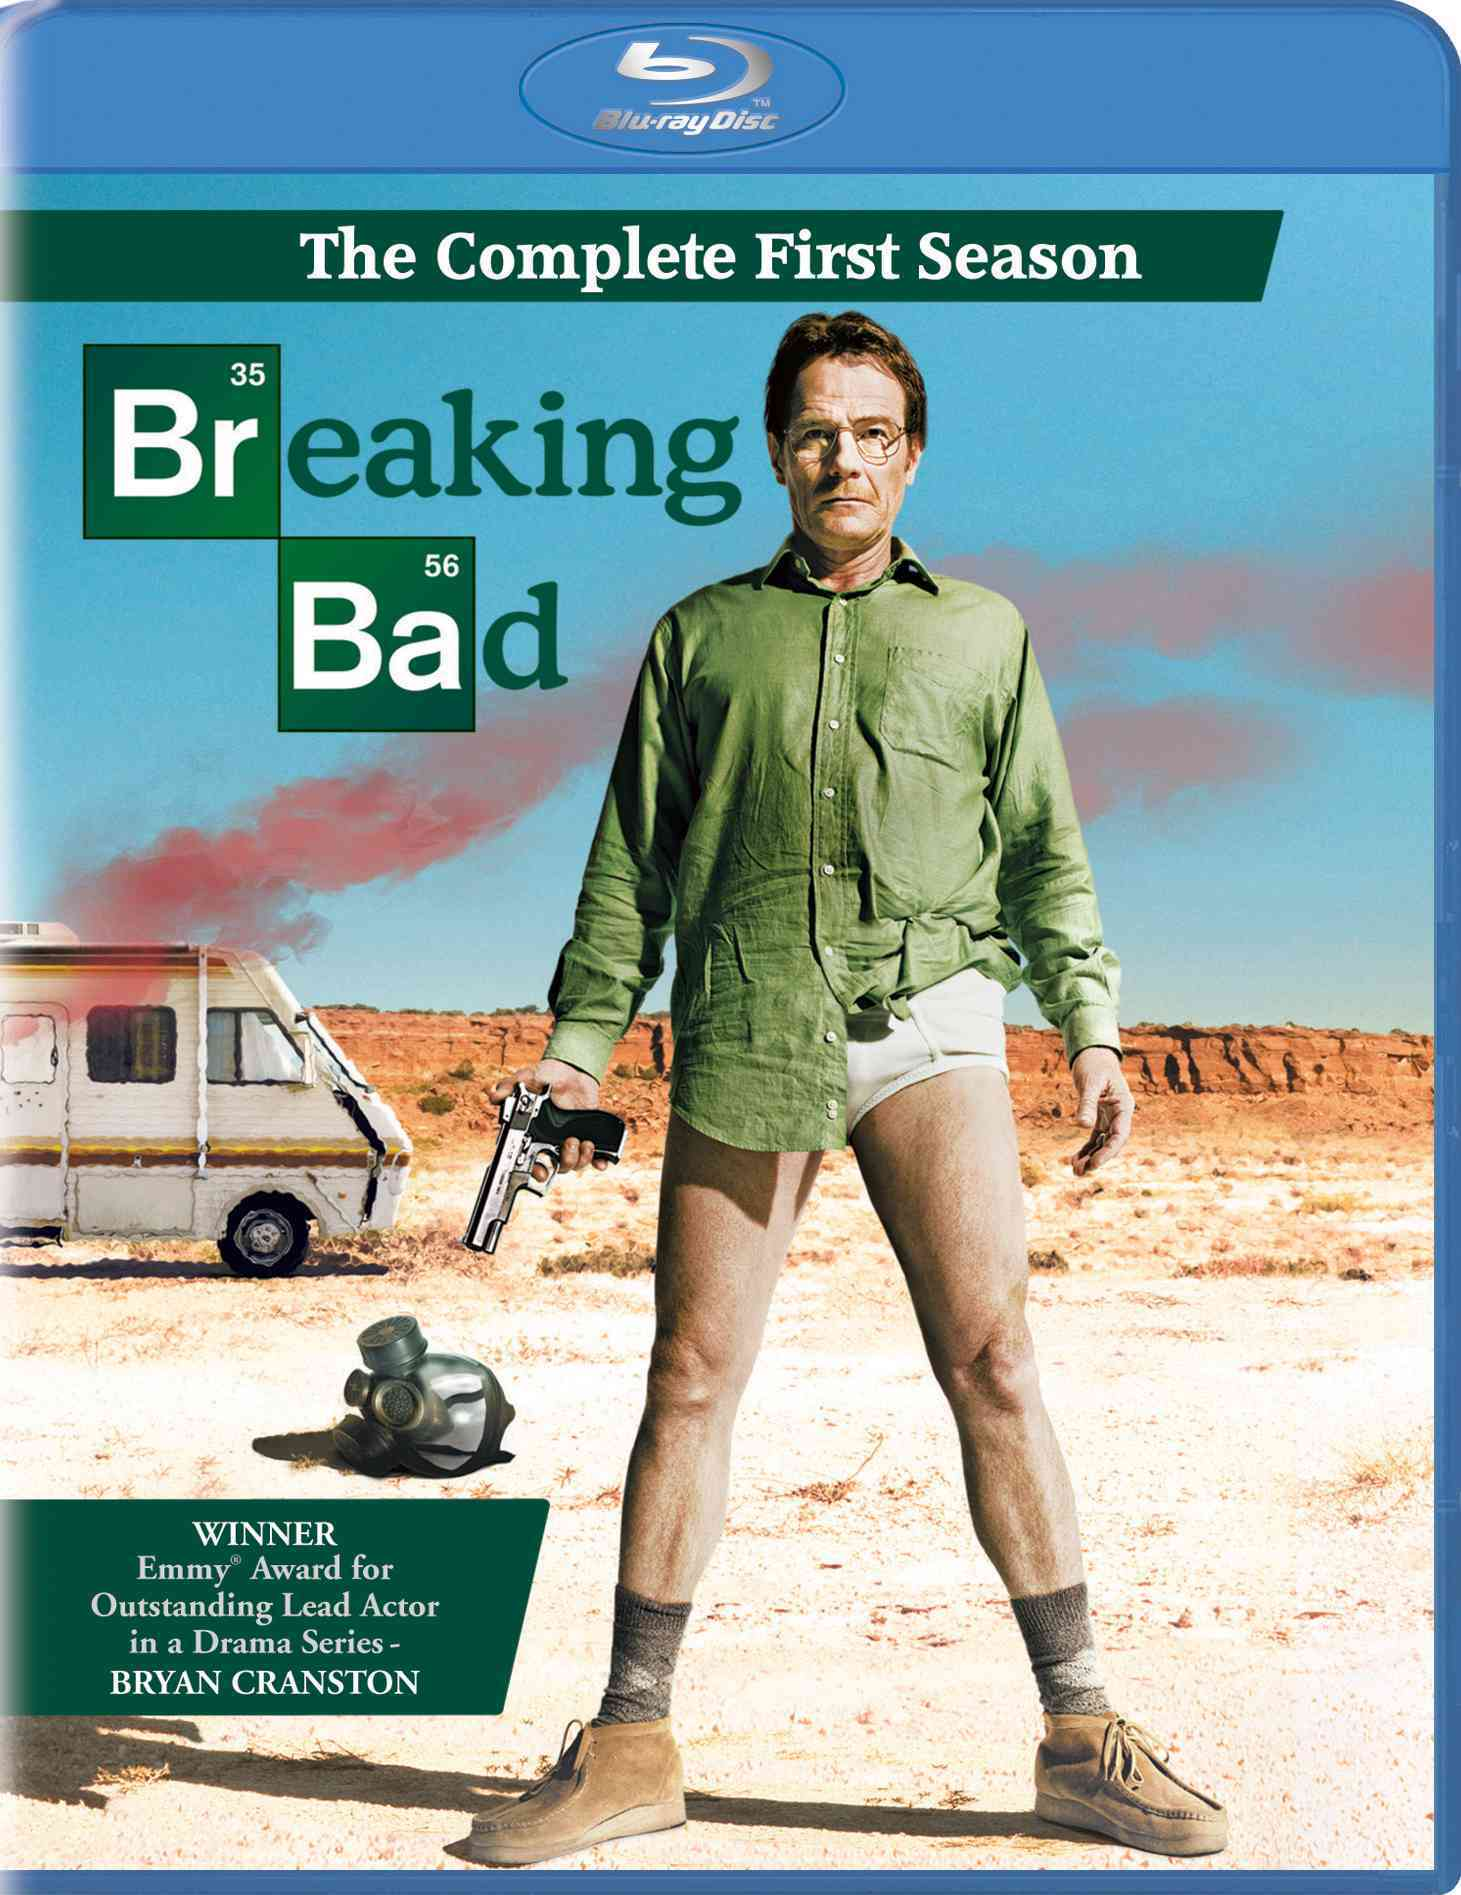 BREAKING BAD:COMPLETE FIRST SEASON BY BREAKING BAD (Blu-Ray)